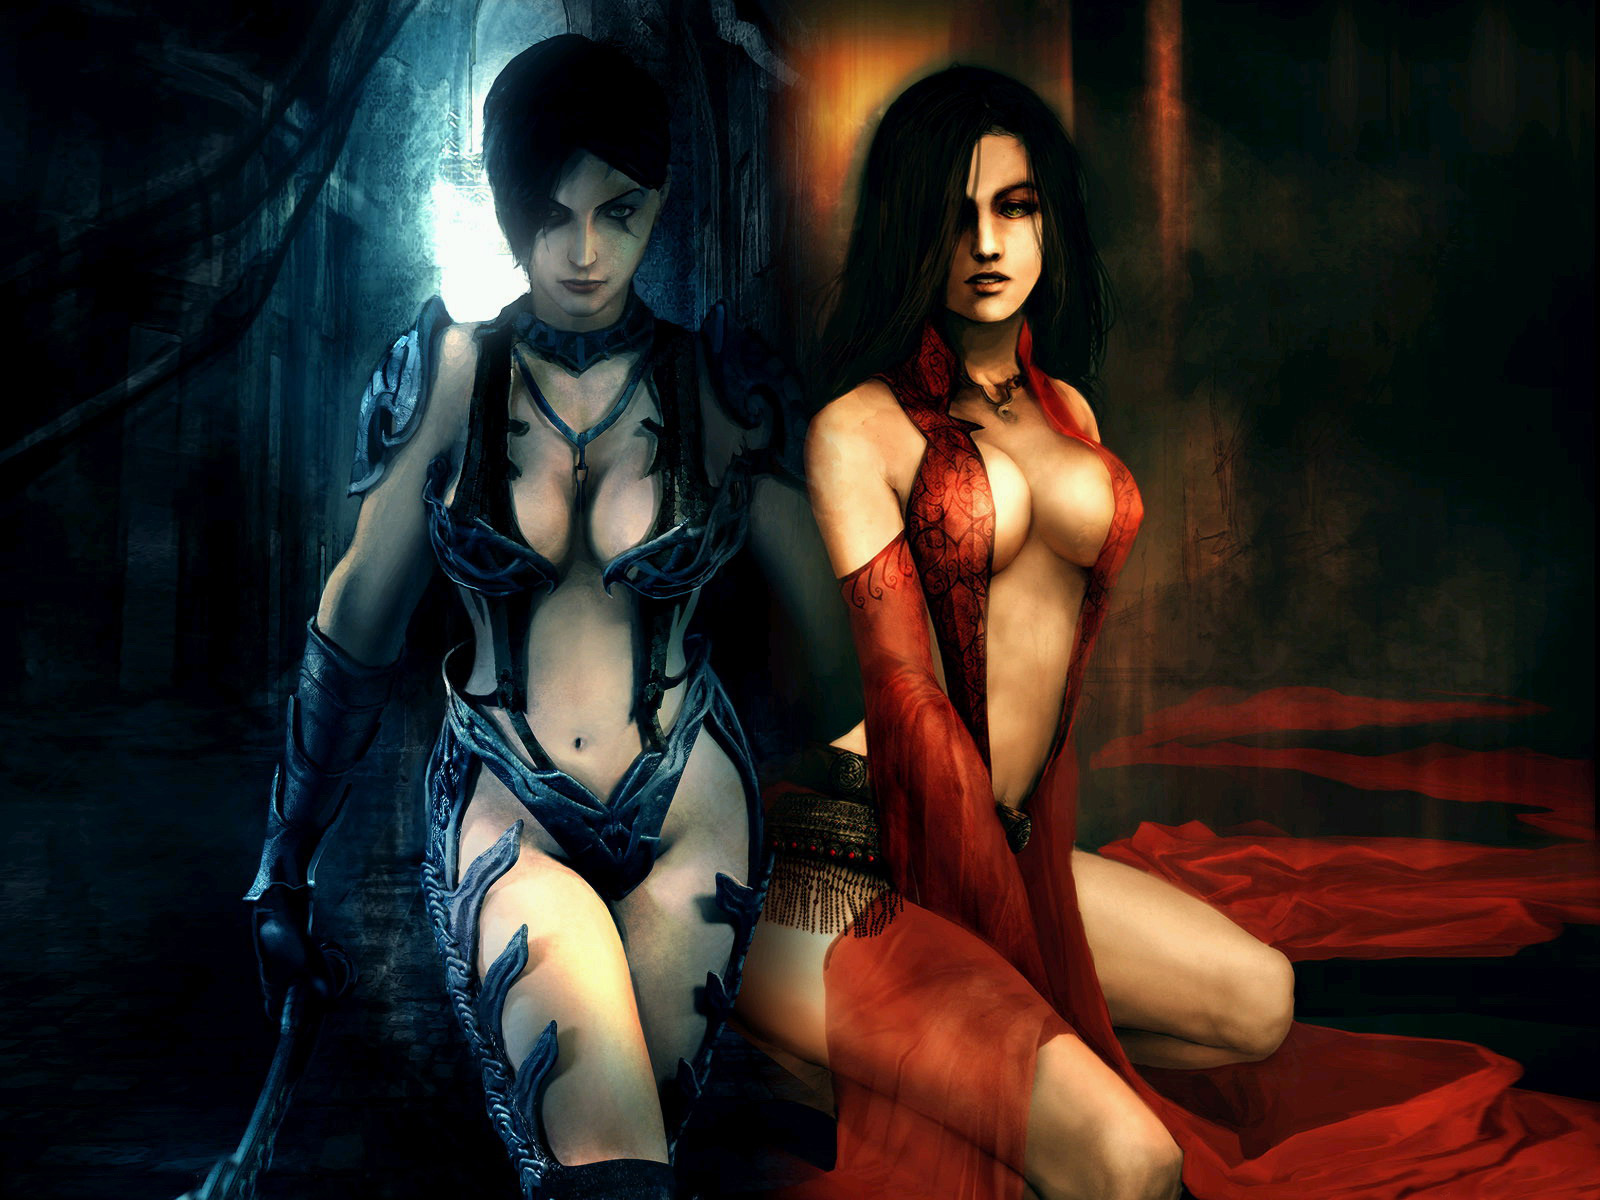 Prince of persia warrior within sexy undress  naked picture